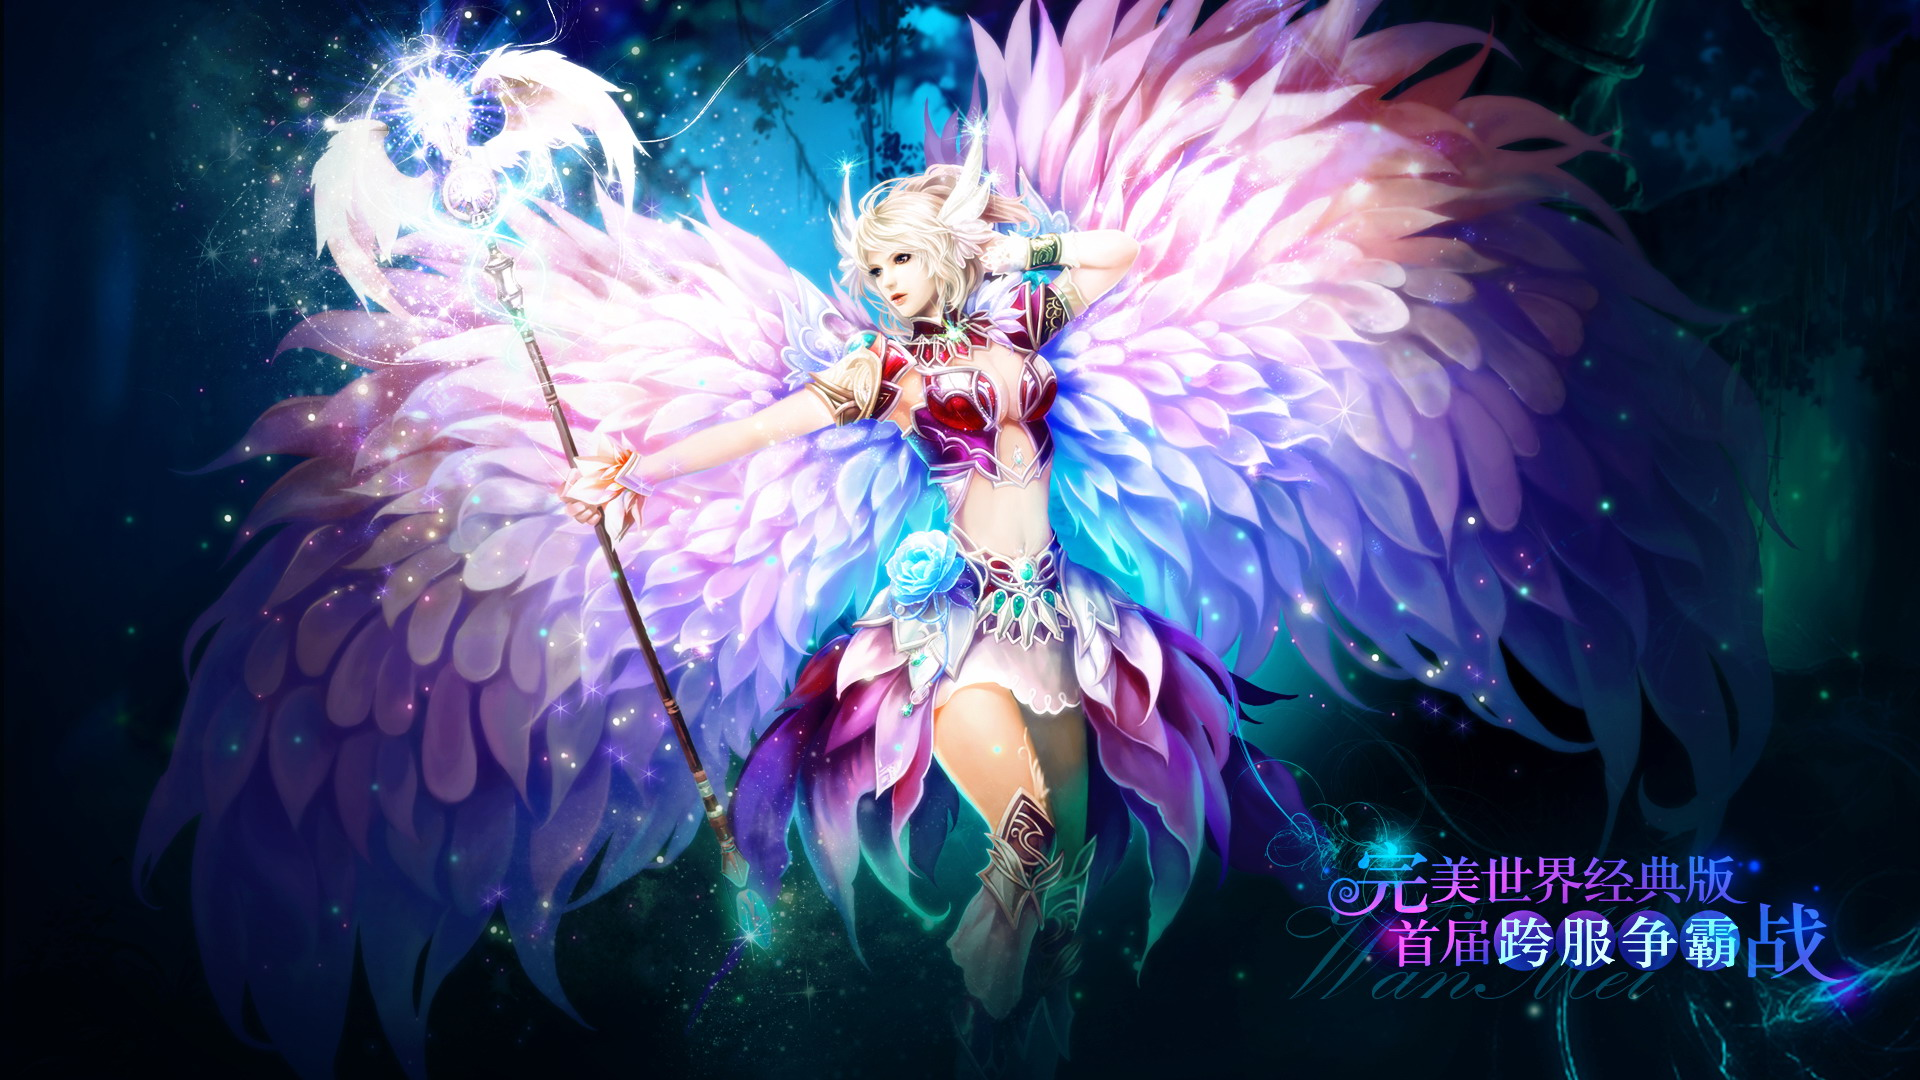 The official corporate homepage of Perfect World Entertainment, publisher of high-quality, free to play MMORPGs.